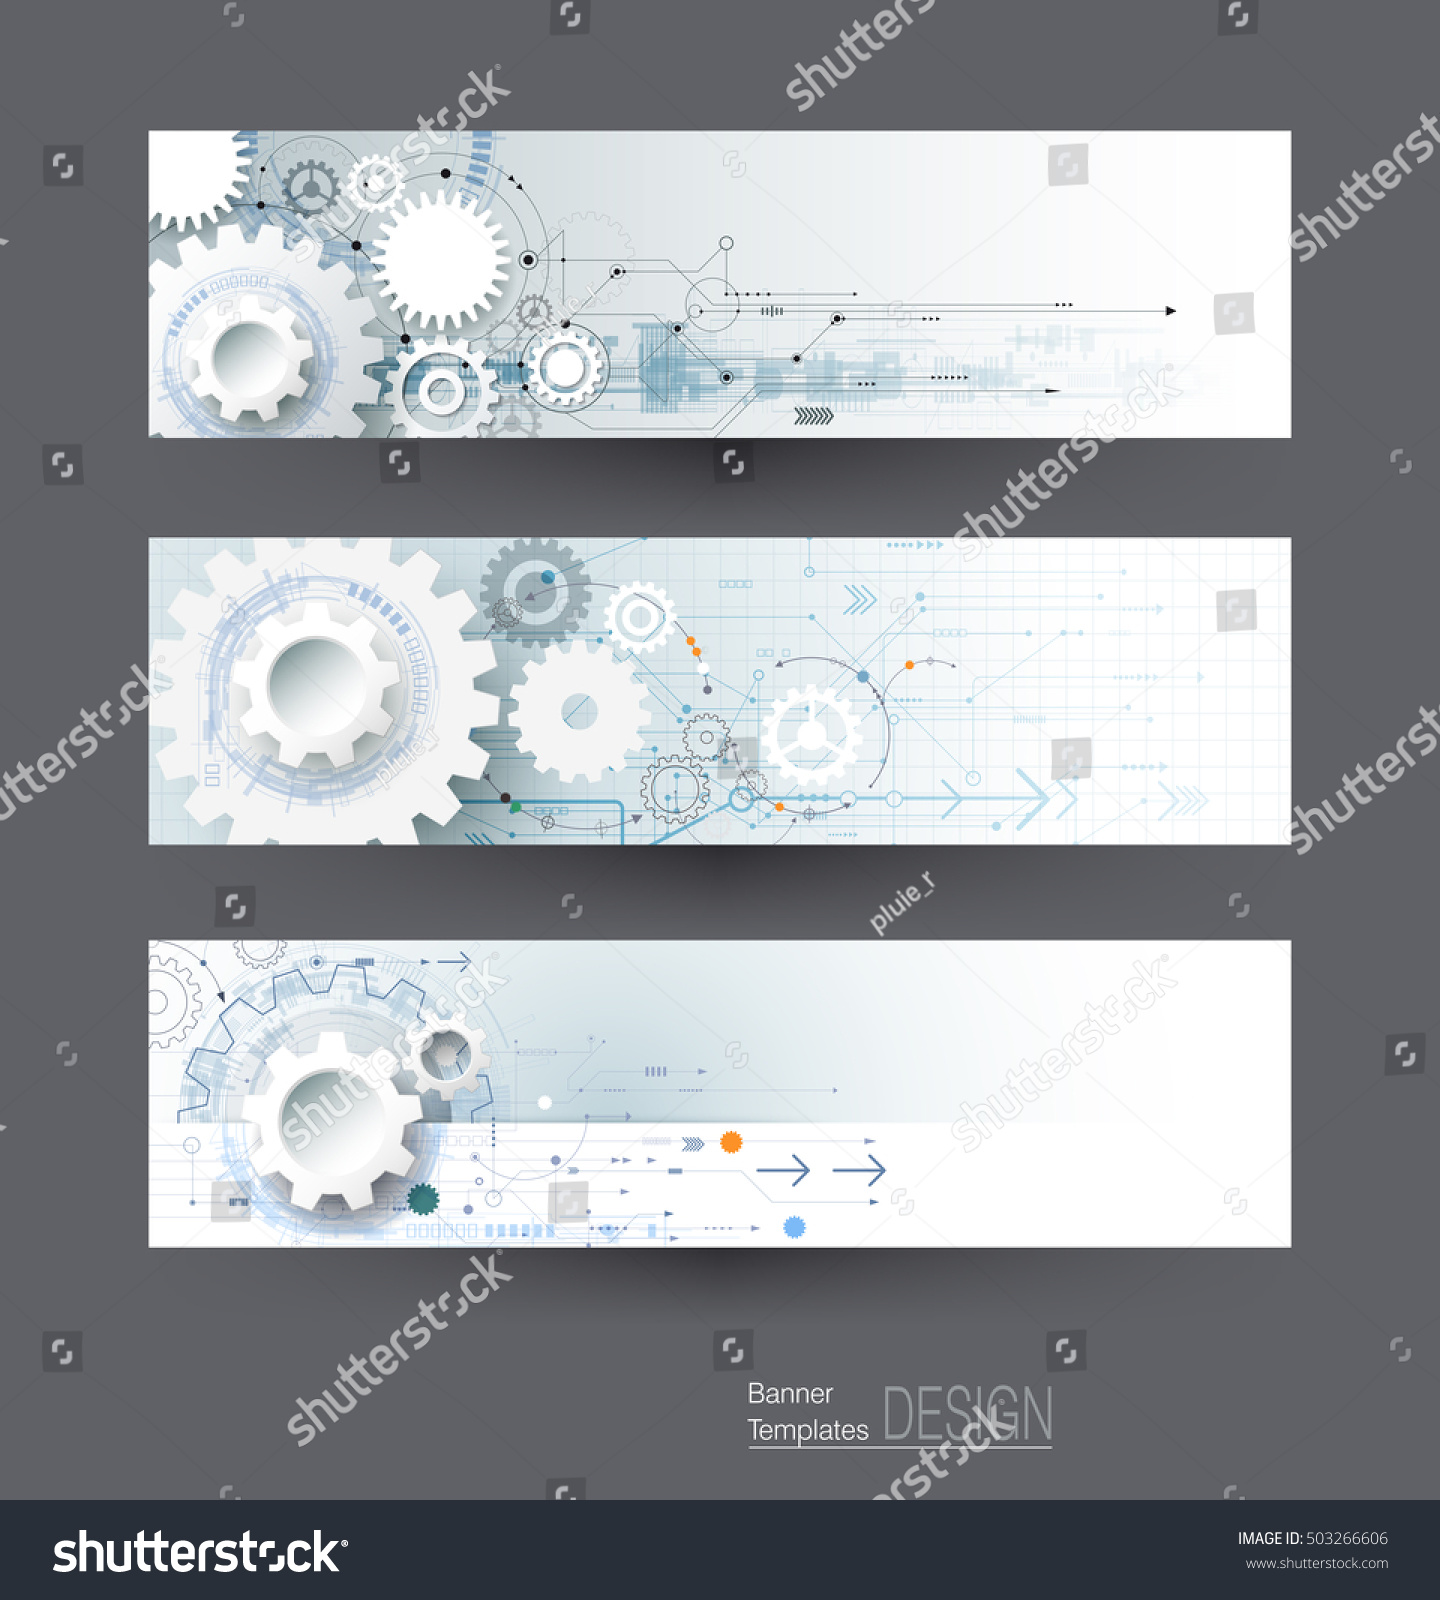 Vector Abstract Gear Wheel Circuit Board Stock Royalty Free Background Graphics All Web And Banners Set High Tech Technology Engineering